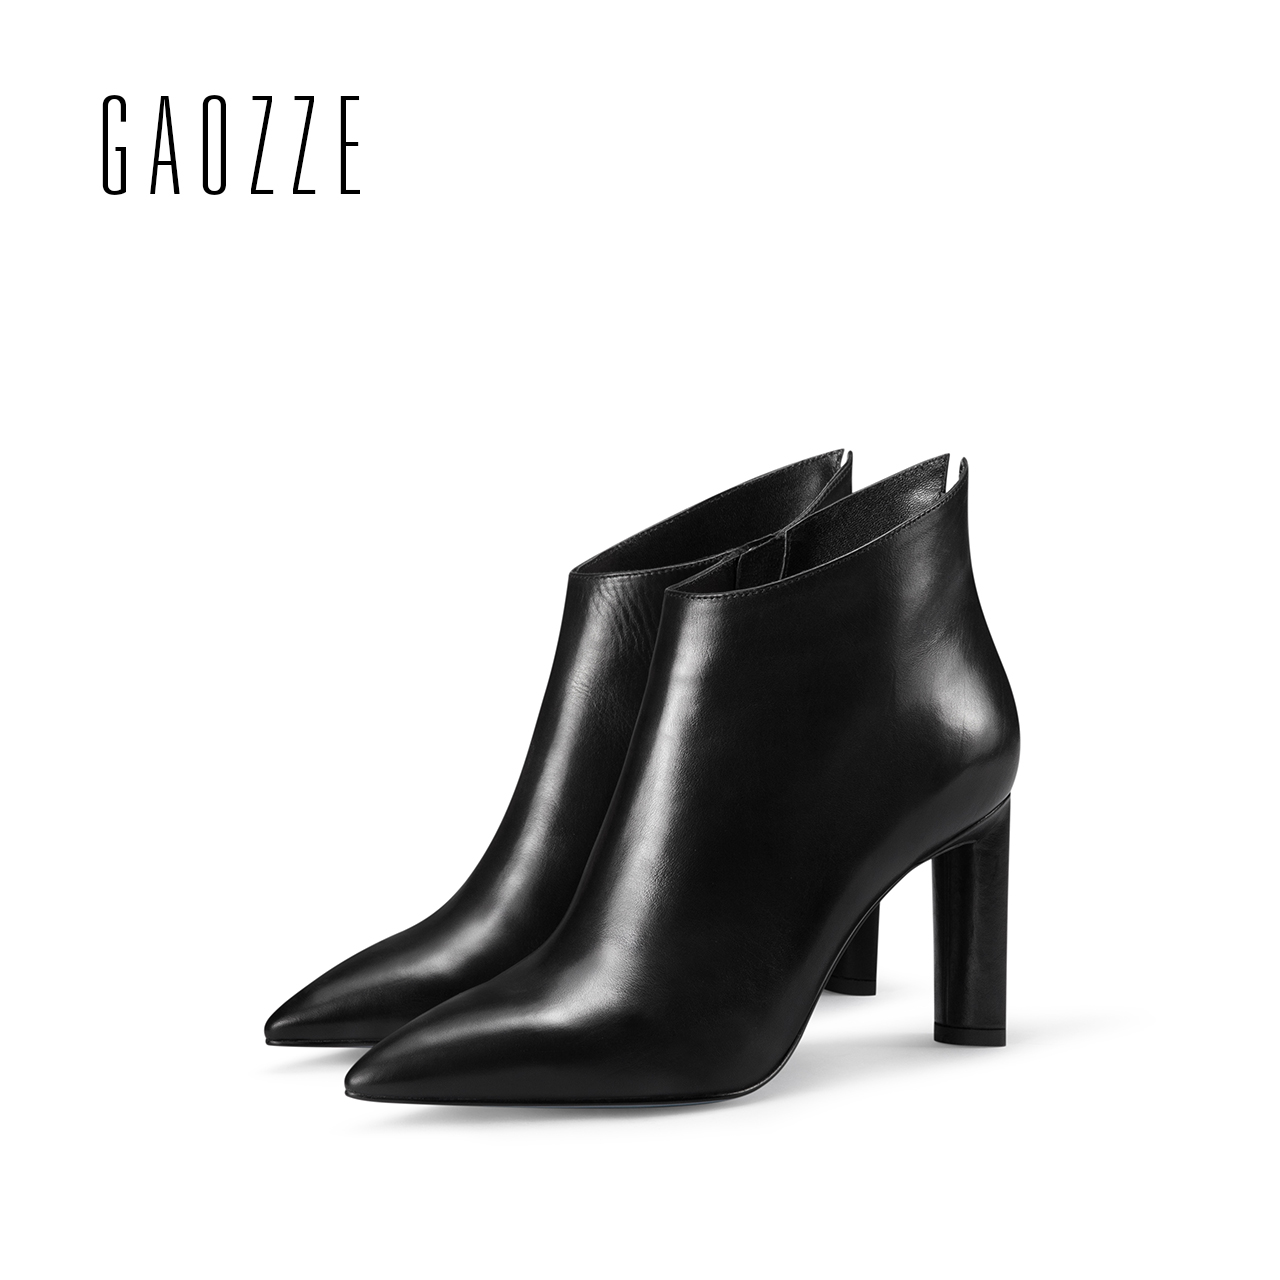 GAOZZE womens black leather boots 2017 new winter women ankle boots high heel side zipper fashion ankle boots shoes for women lin king womens faux leather ankle boots platform high heel booties for women fashion buckle winter dress shoes martin boots